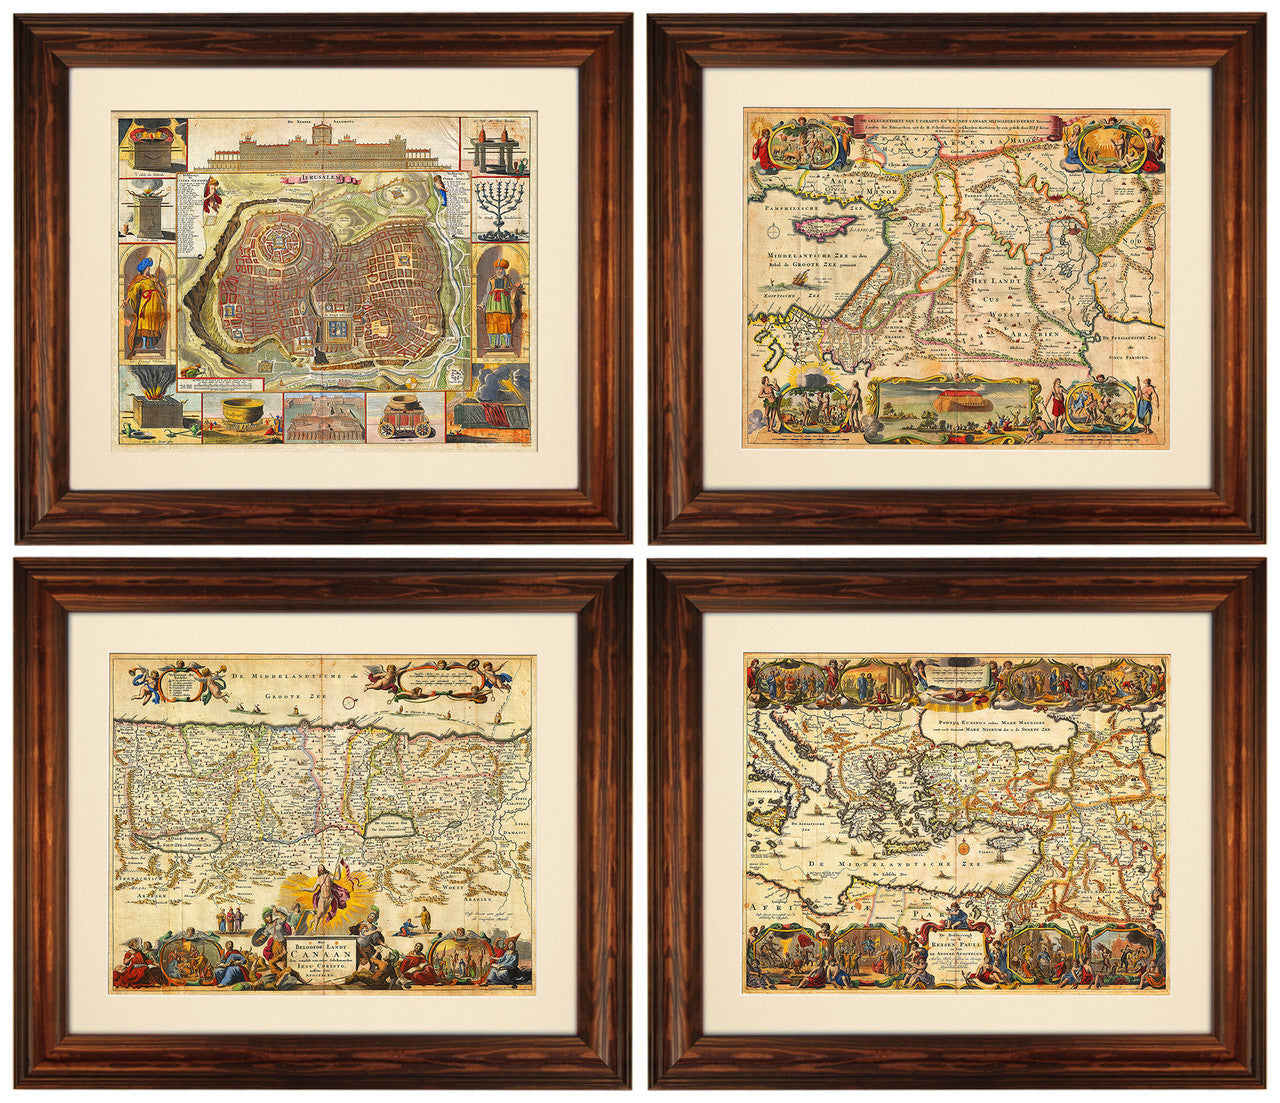 Set of 4 Biblical Maps of the Holy Land & Jerusalem, Framed